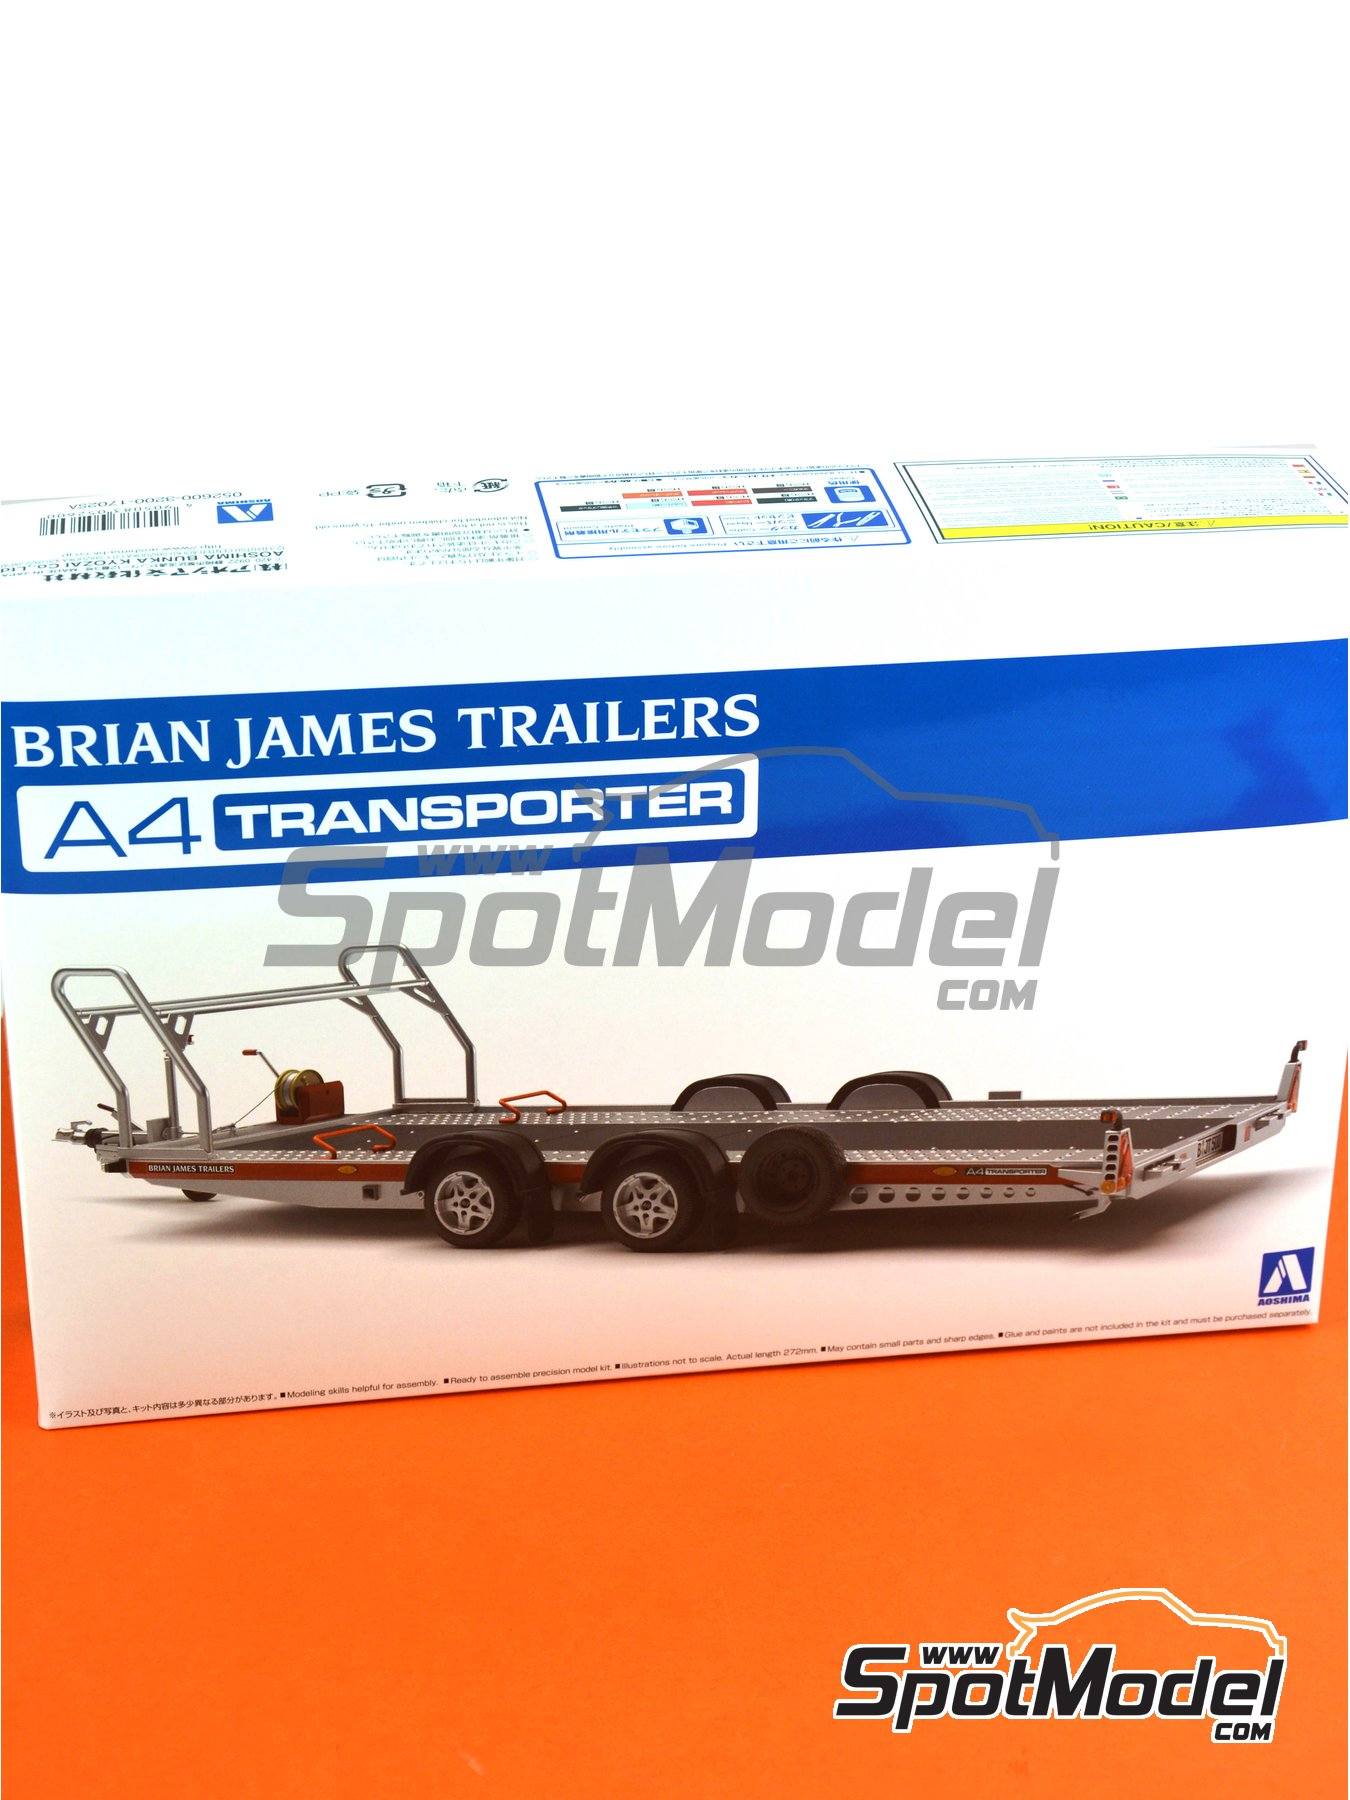 Brian James Trailers A4 transporter | Model kit in 1/24 scale manufactured by Aoshima (ref. 05260) image